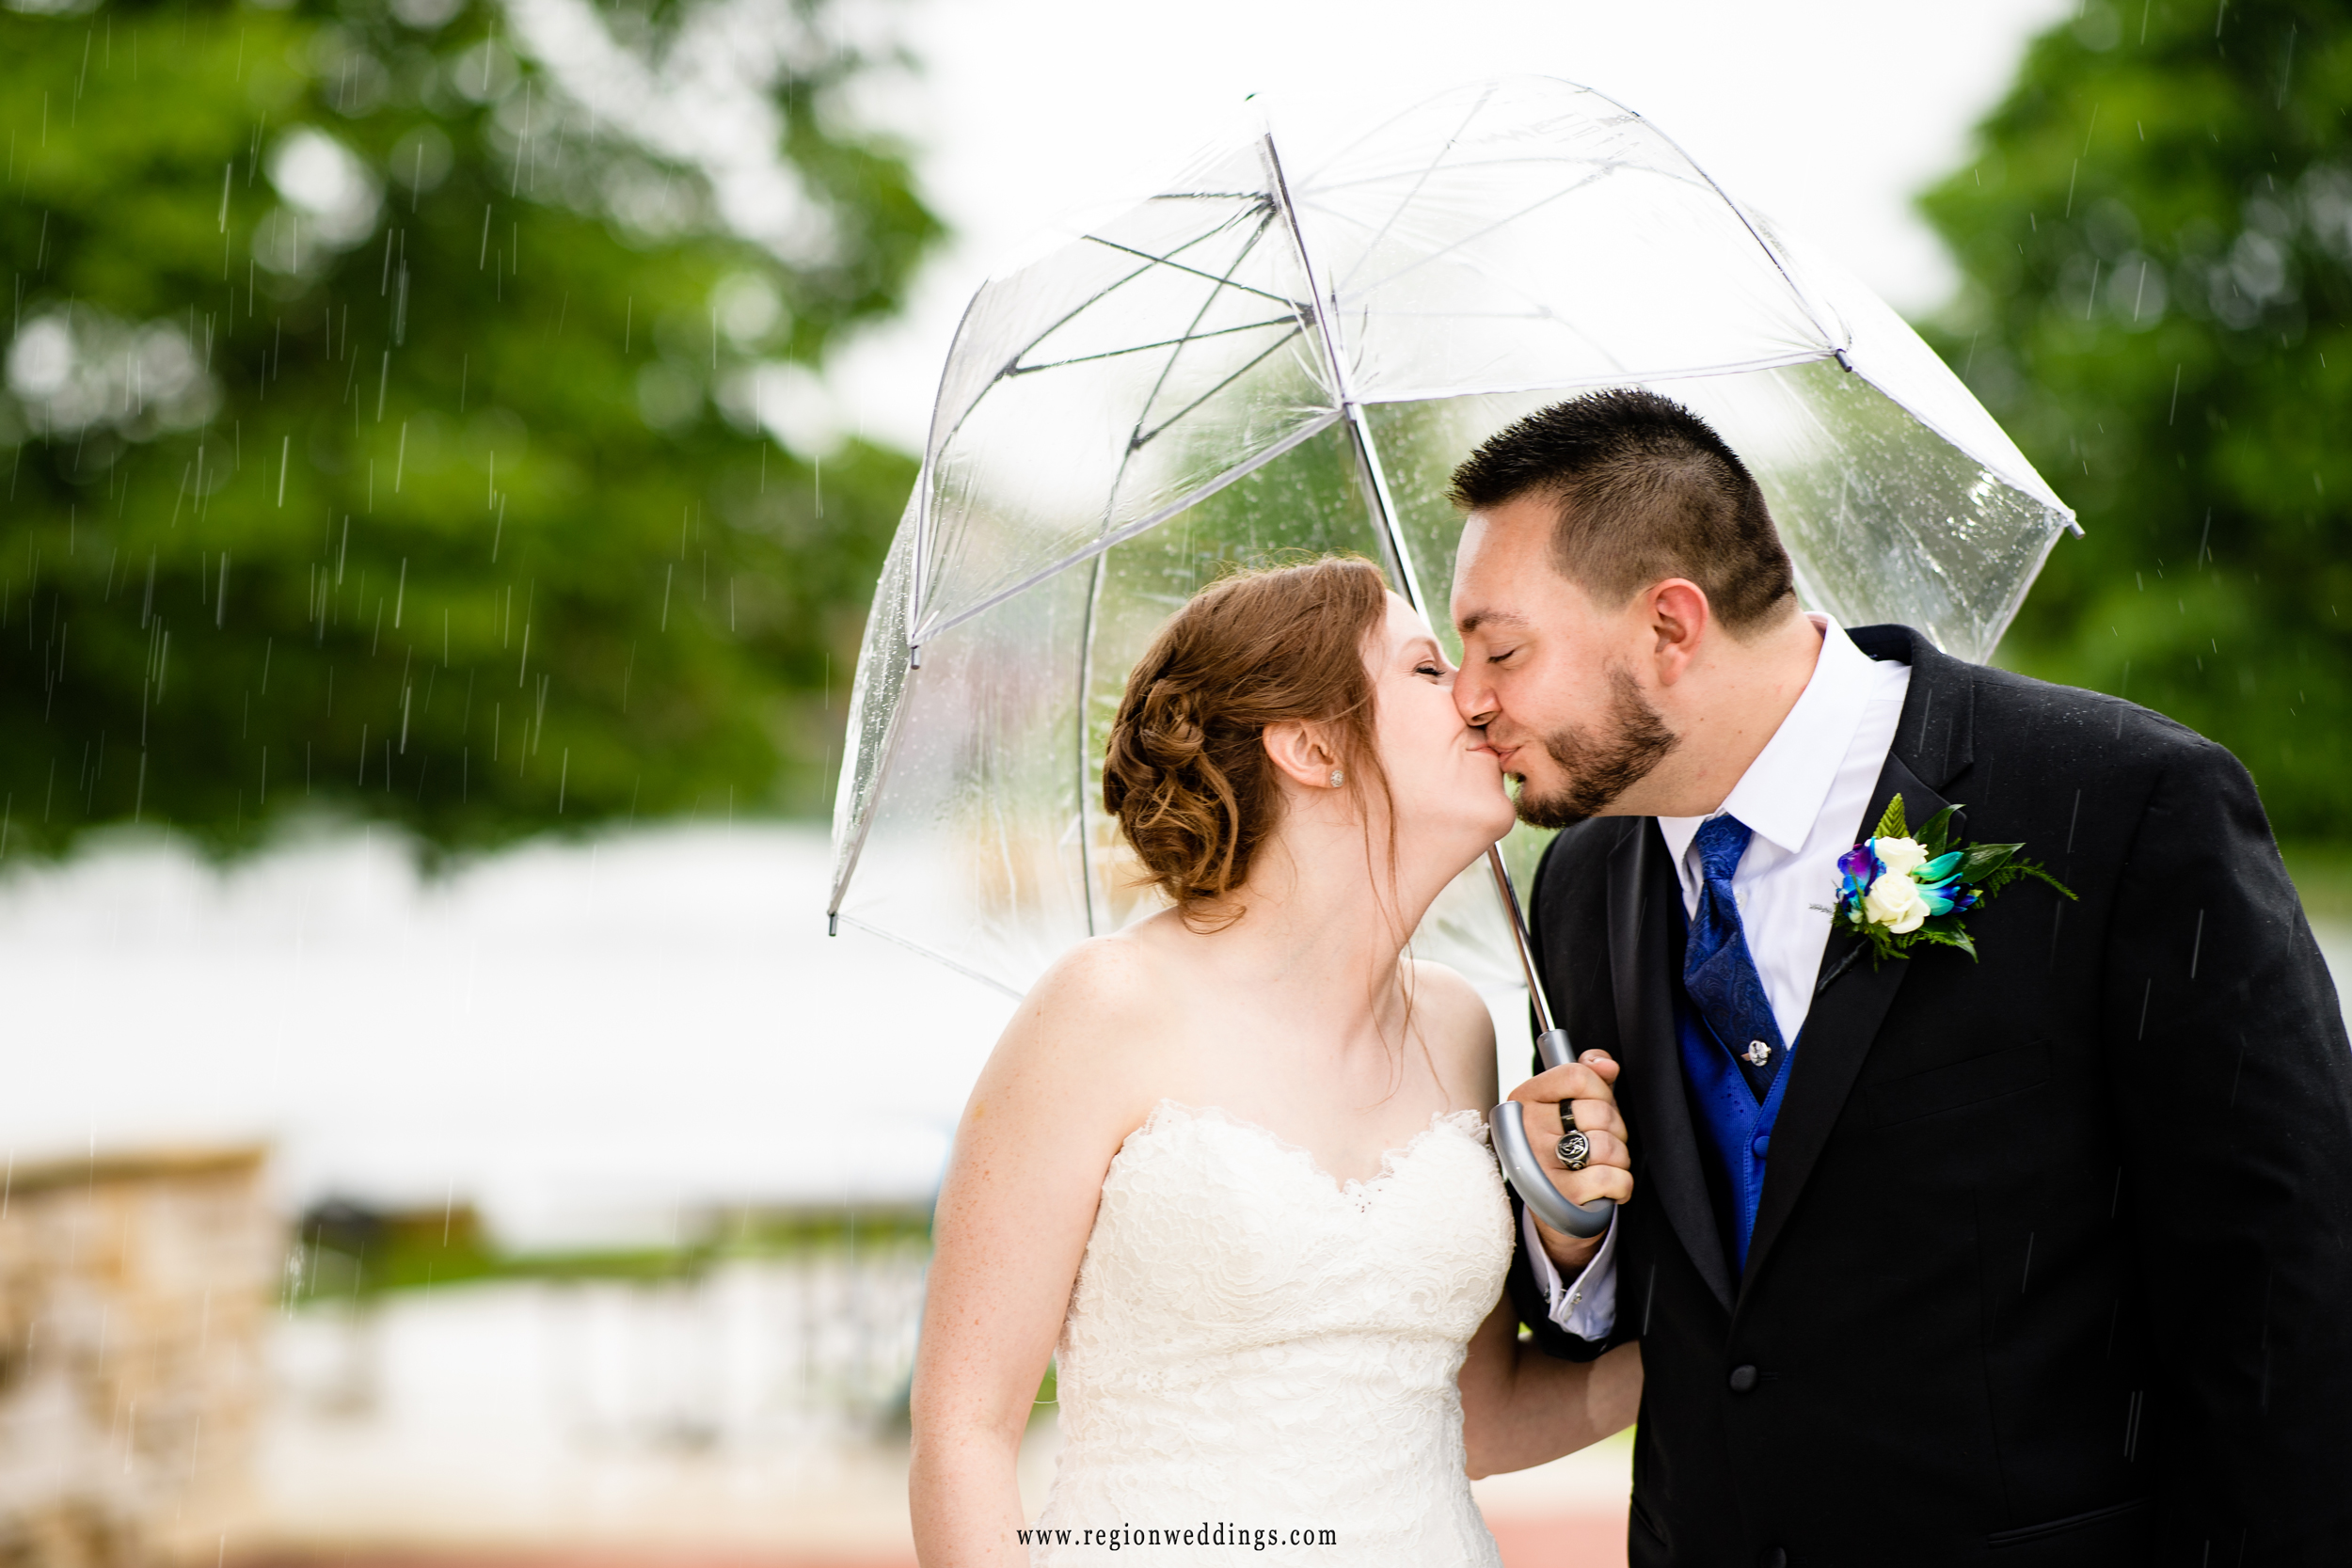 Bride and groom kiss under an umbrella at Centennial Park in Munster, Indiana.